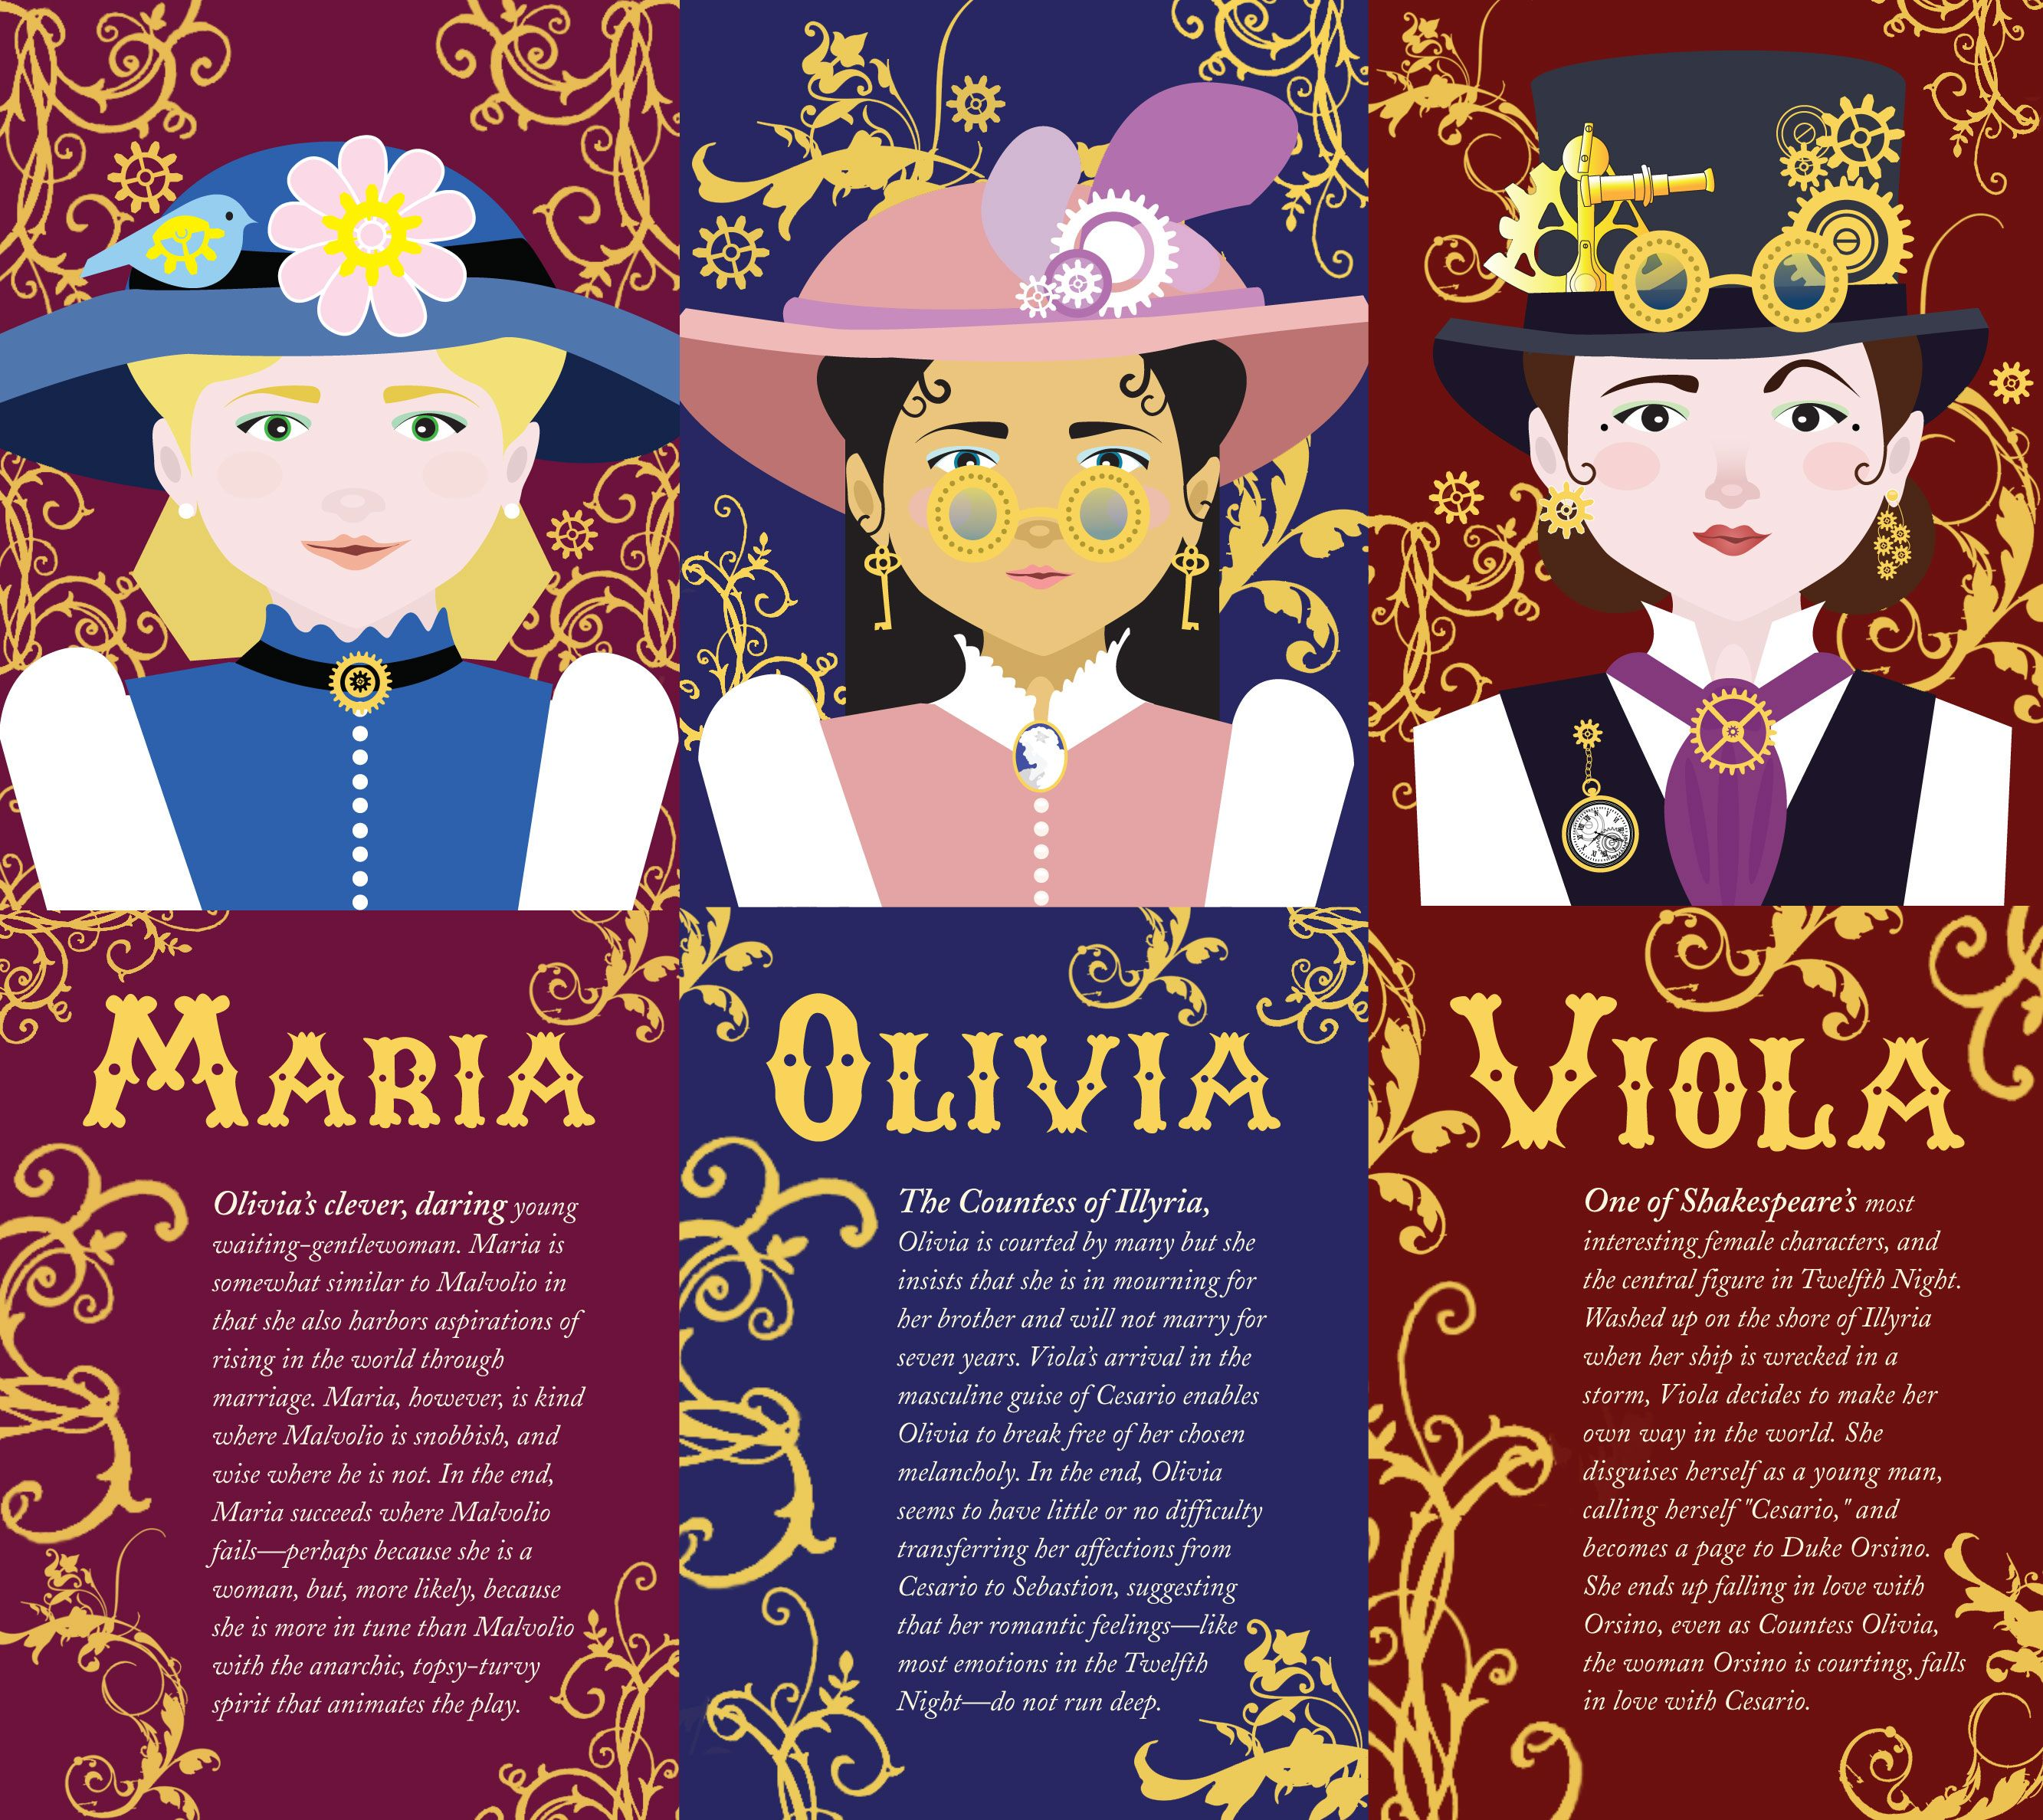 character analysis of viola in the twelfth night by william shakespeare Home → no fear shakespeare → twelfth night → characters no fear shakespeare twelfth night viola's poignant plight is the central conflict in the play.